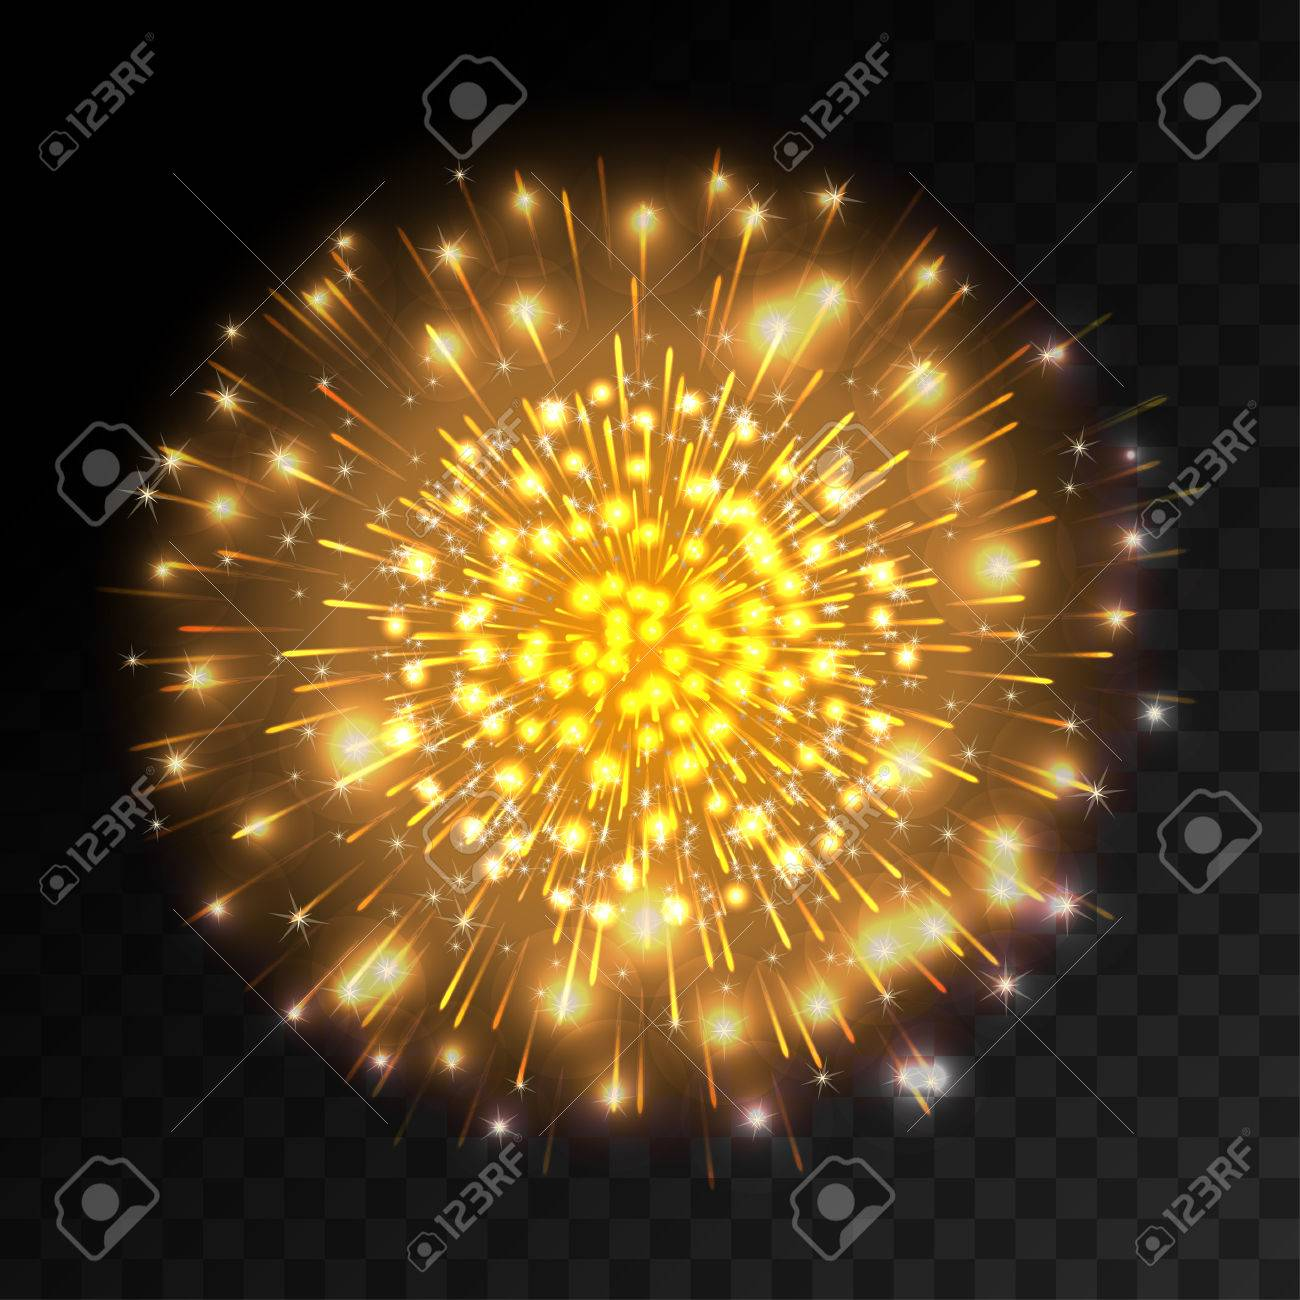 Colorful Firework Explosion On Transparent Background  White     Colorful firework explosion on transparent background  White  gold and  yellow lights  New Year